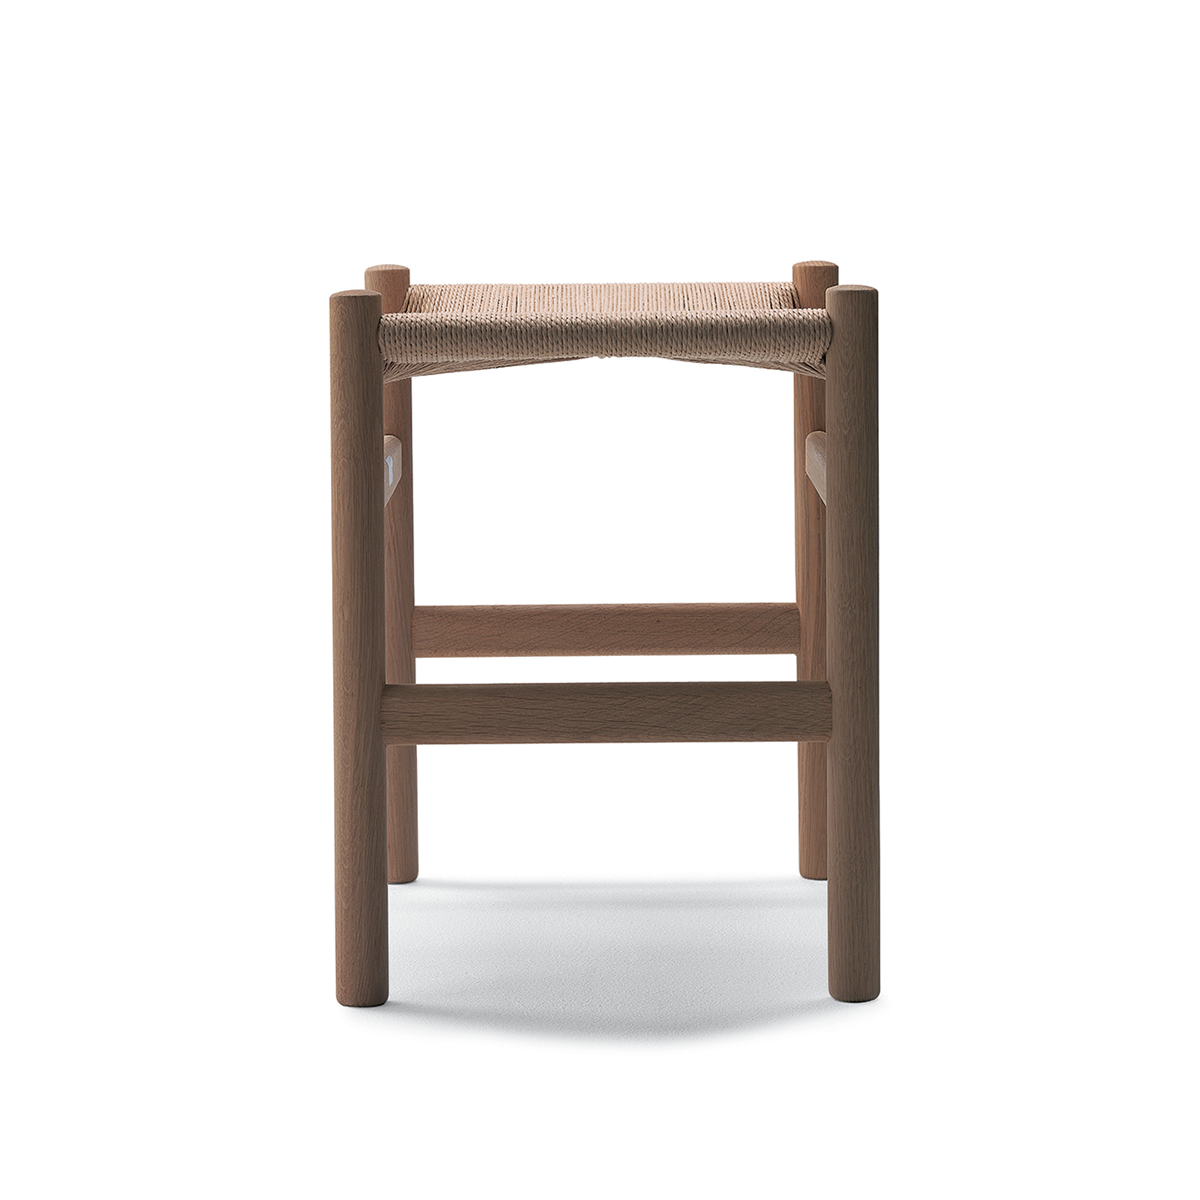 Carl Hansen & Son CH 53 Wegner Stool with Soap Finish 威格納 椅凳 / 玄關椅 皂裝款